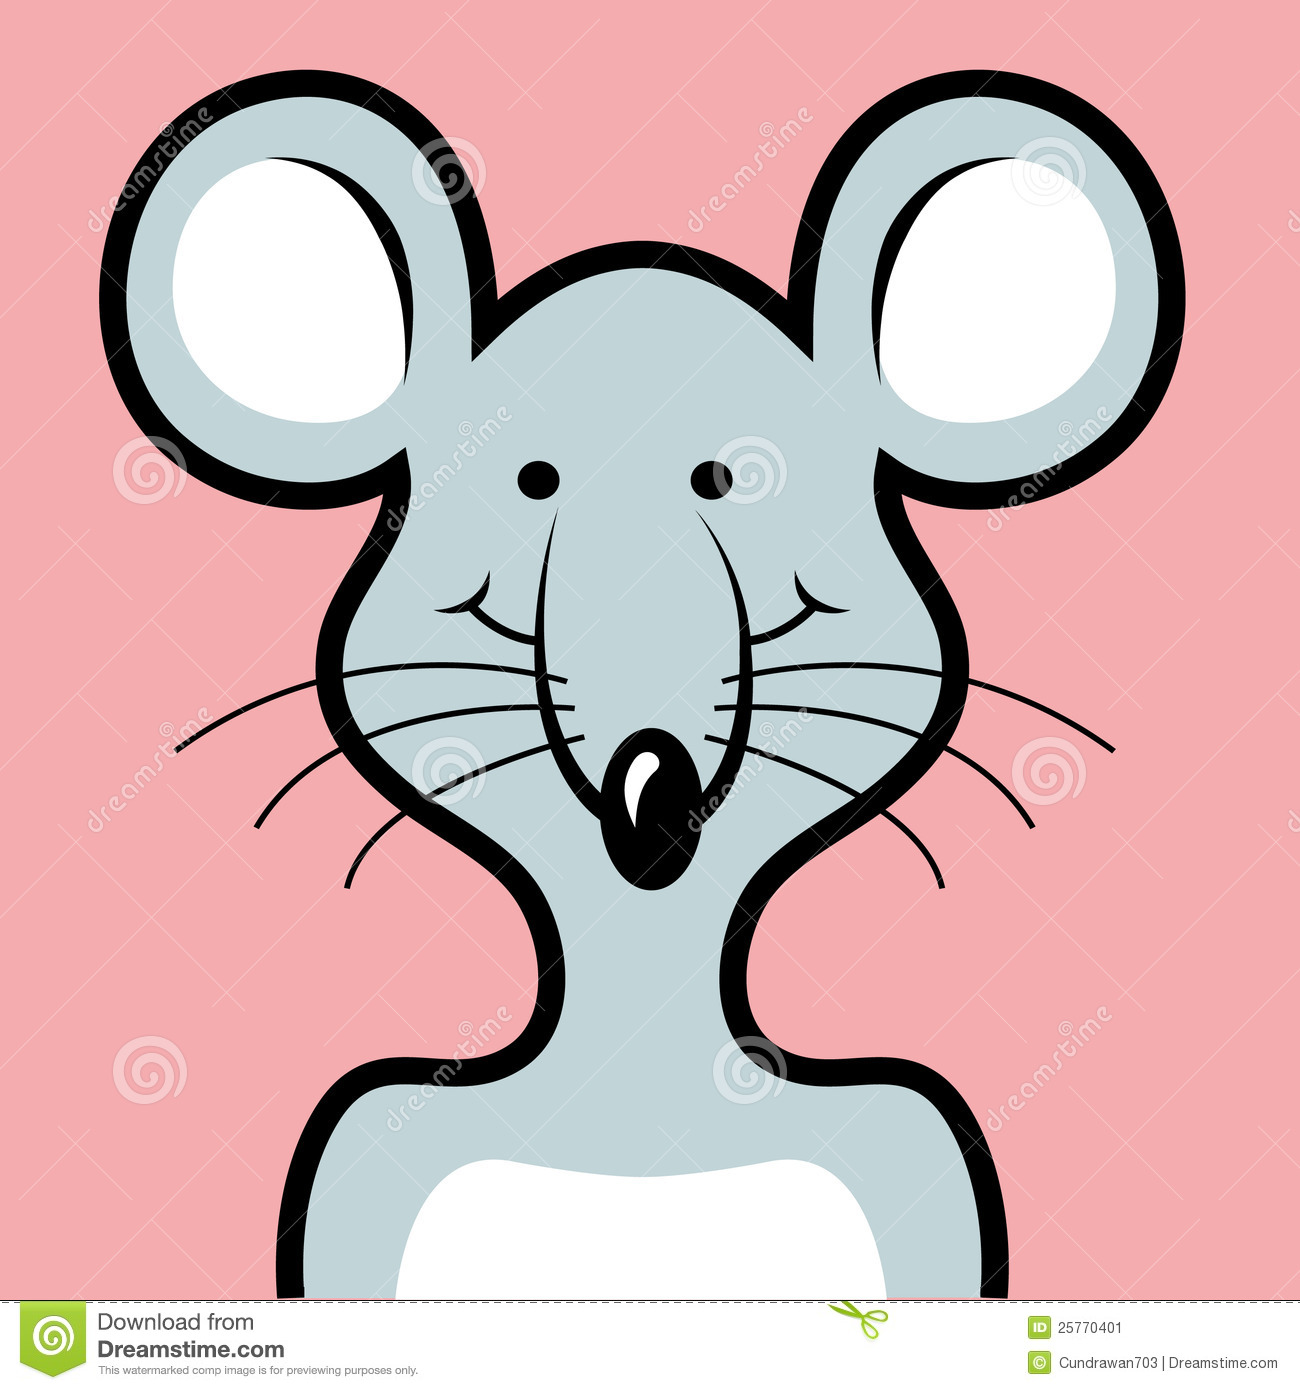 Avatar 2 Animals: Mouse Avatar Stock Image